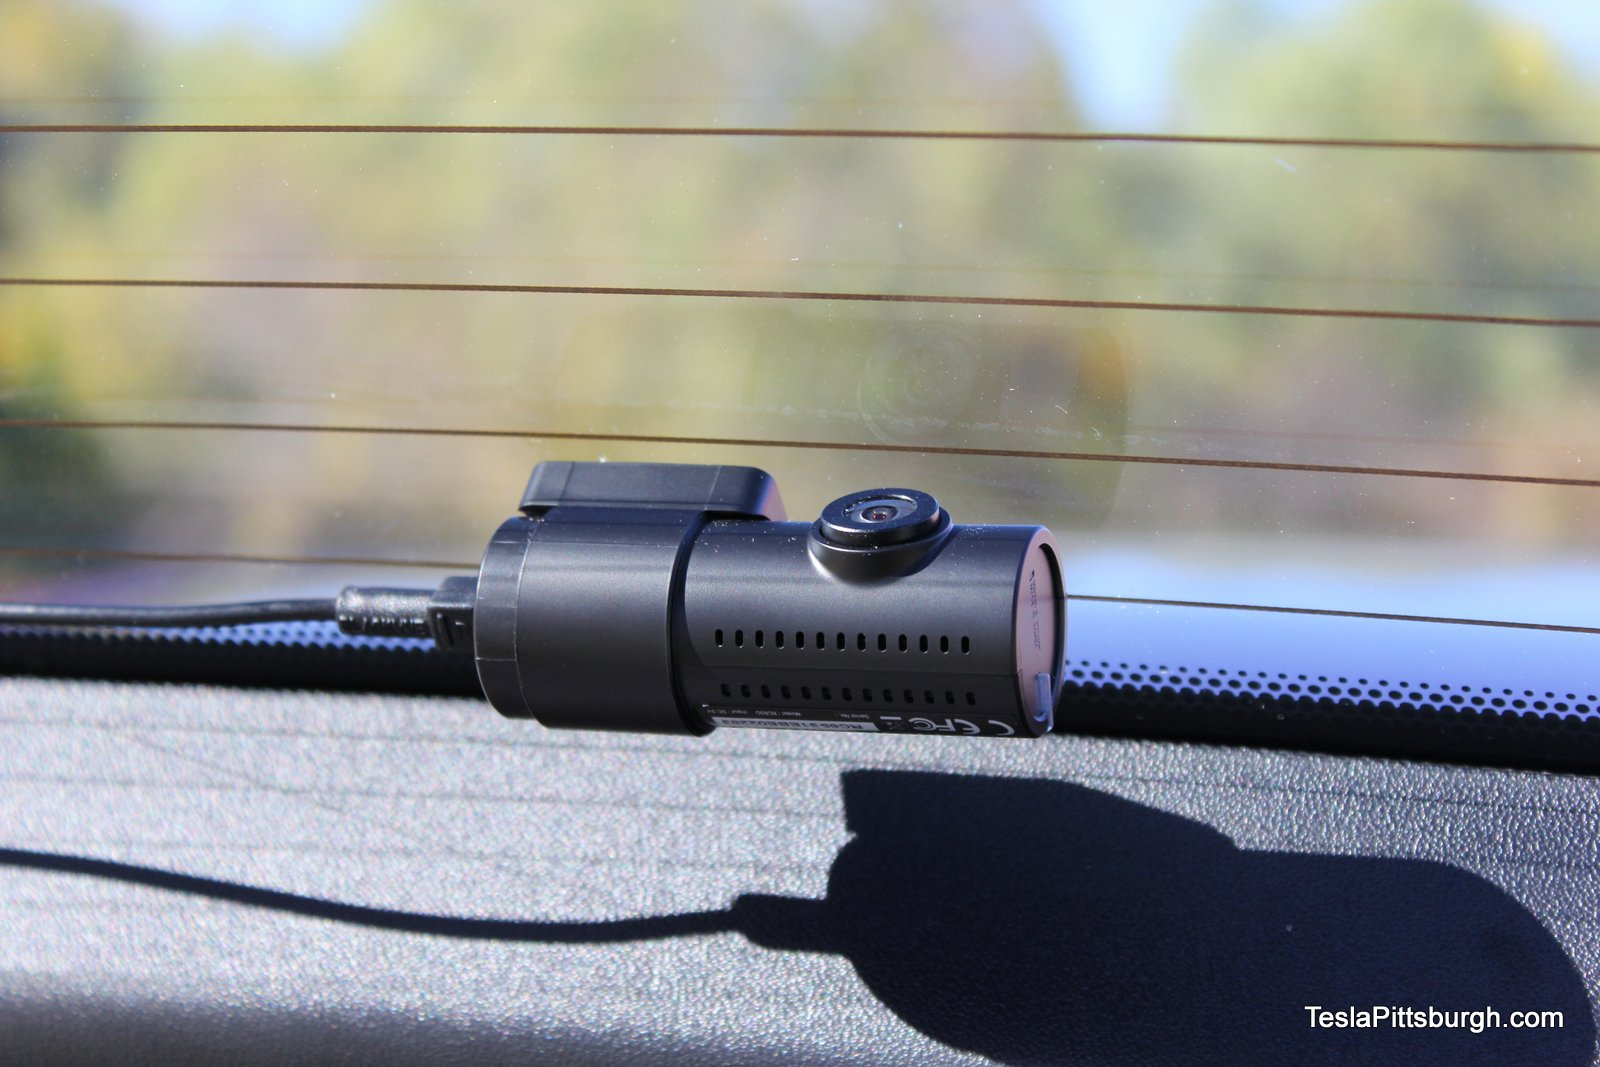 tesla-pittsburgh-dashcam-review-camera-blackvue-camera-rear-mount